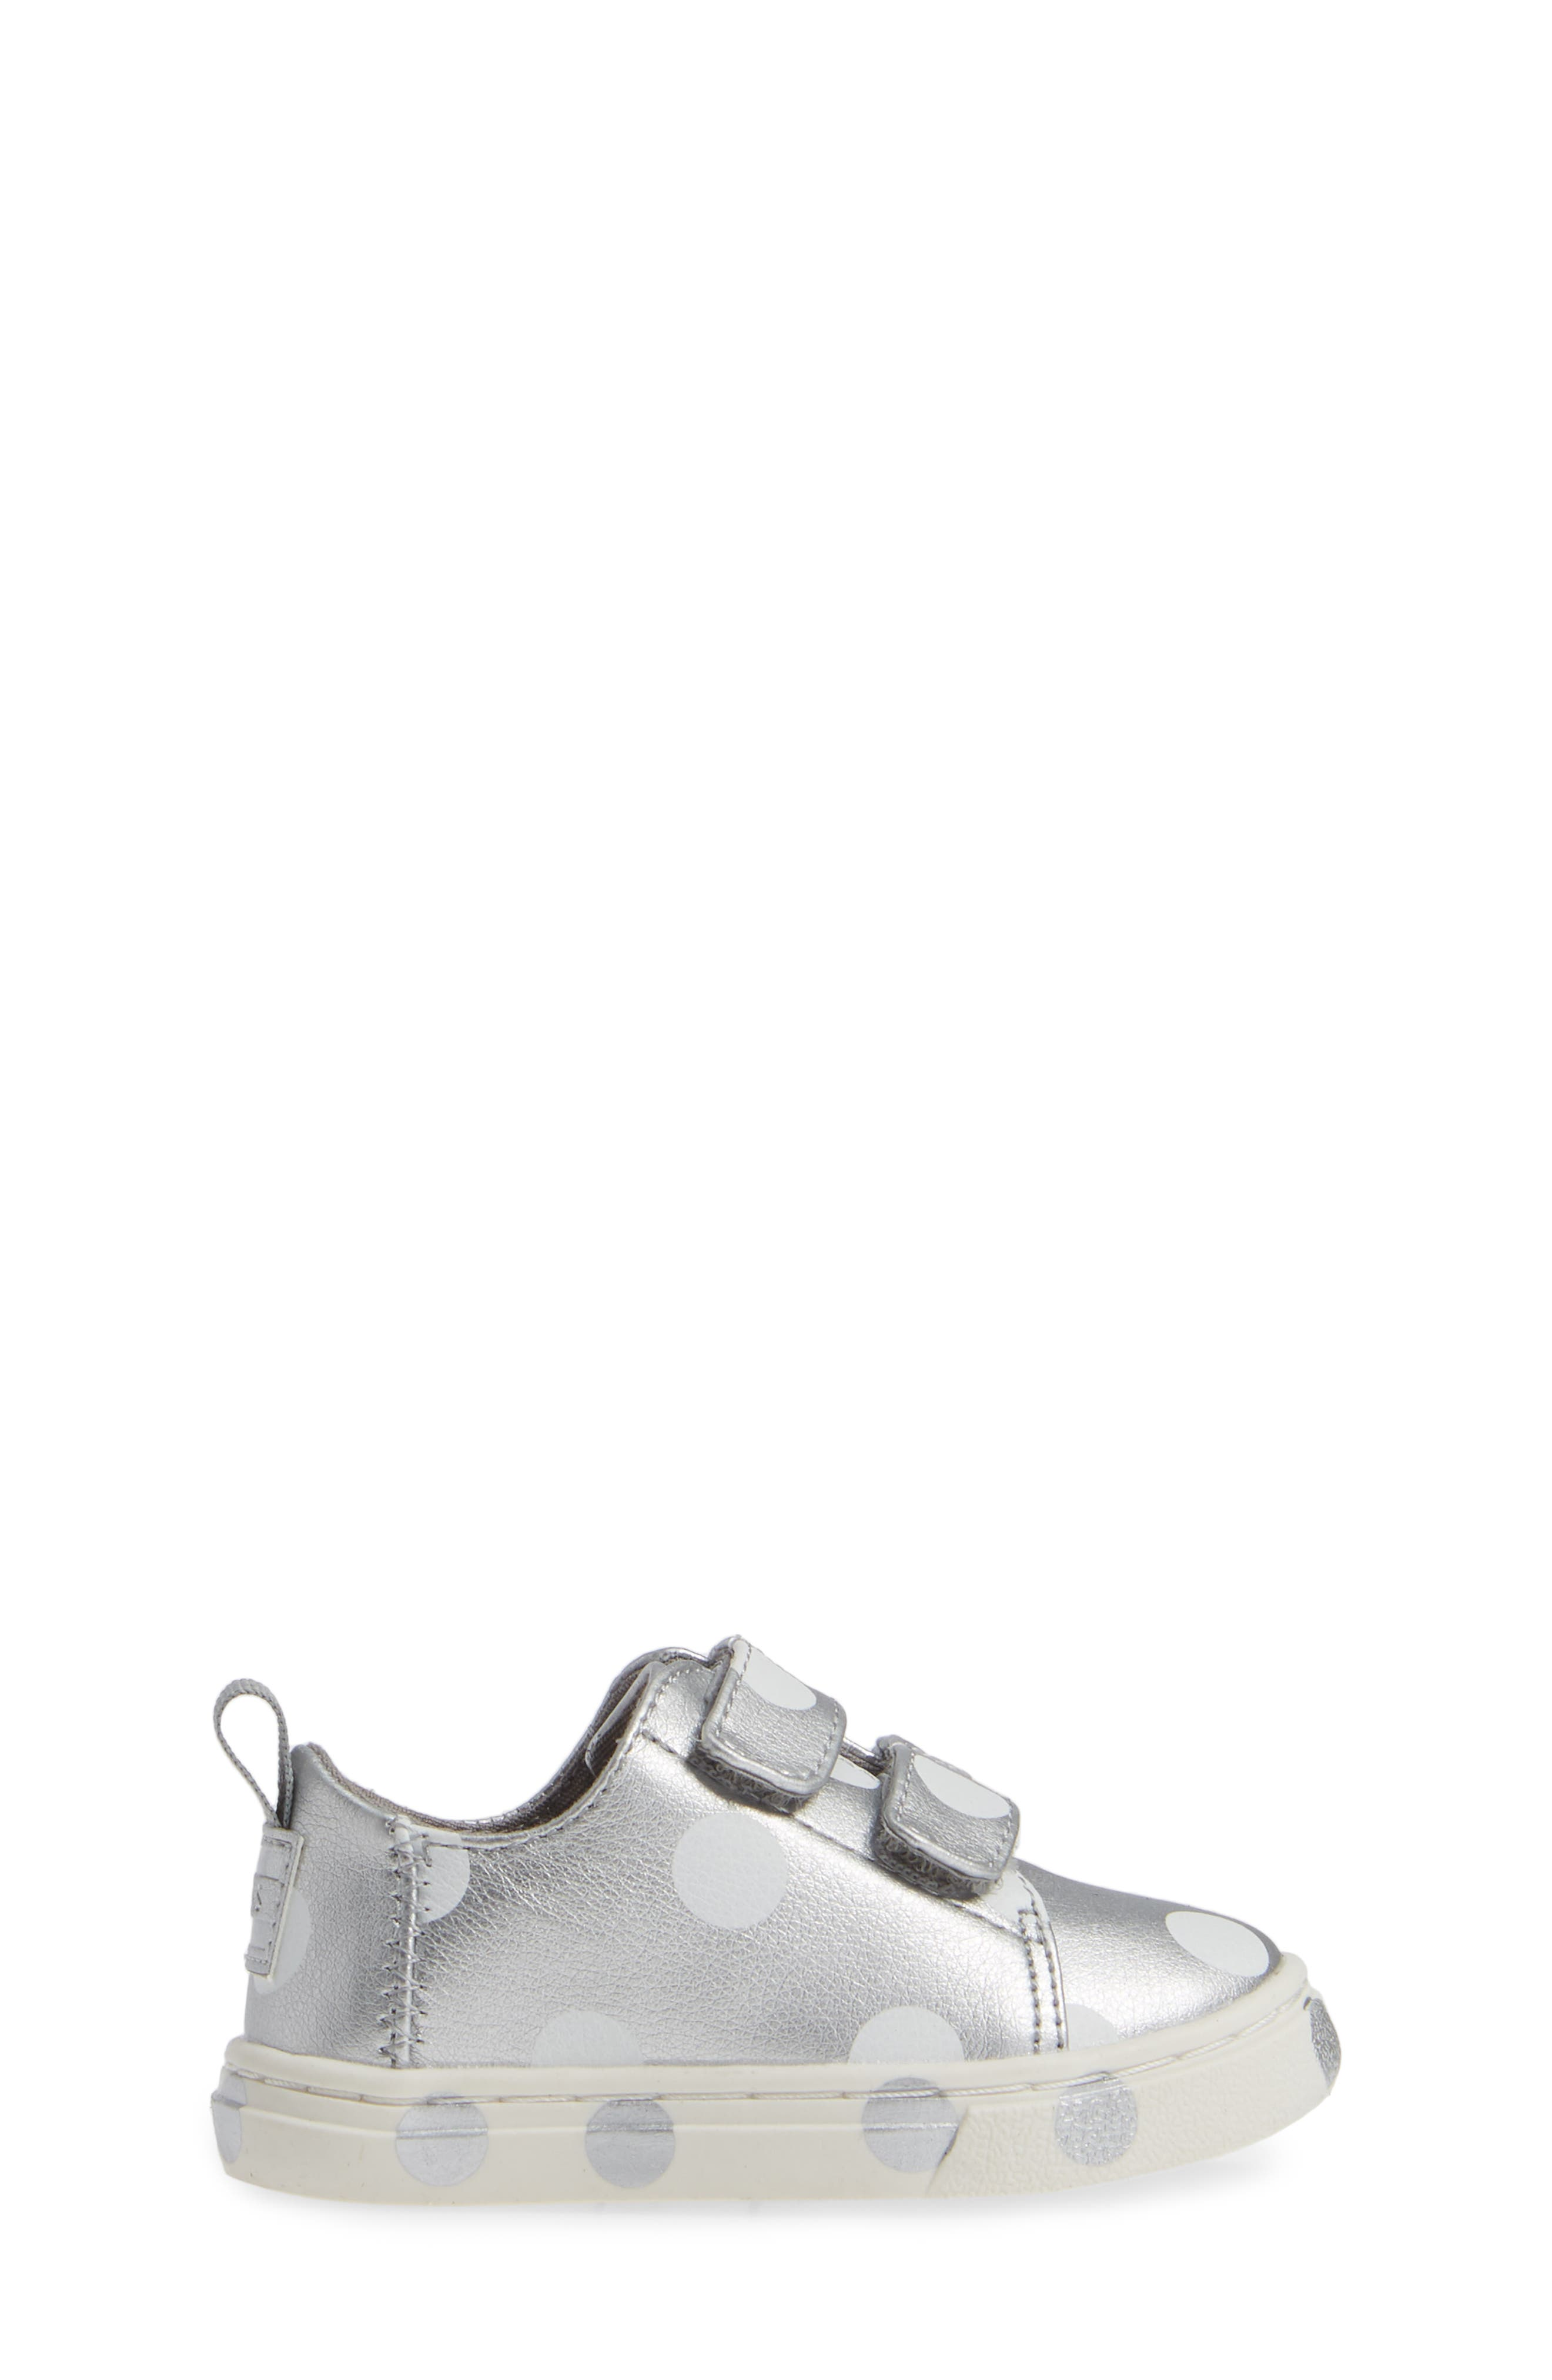 Lenny Sneaker,                             Alternate thumbnail 3, color,                             SILVER SYNTHETIC LEATHER DOTS